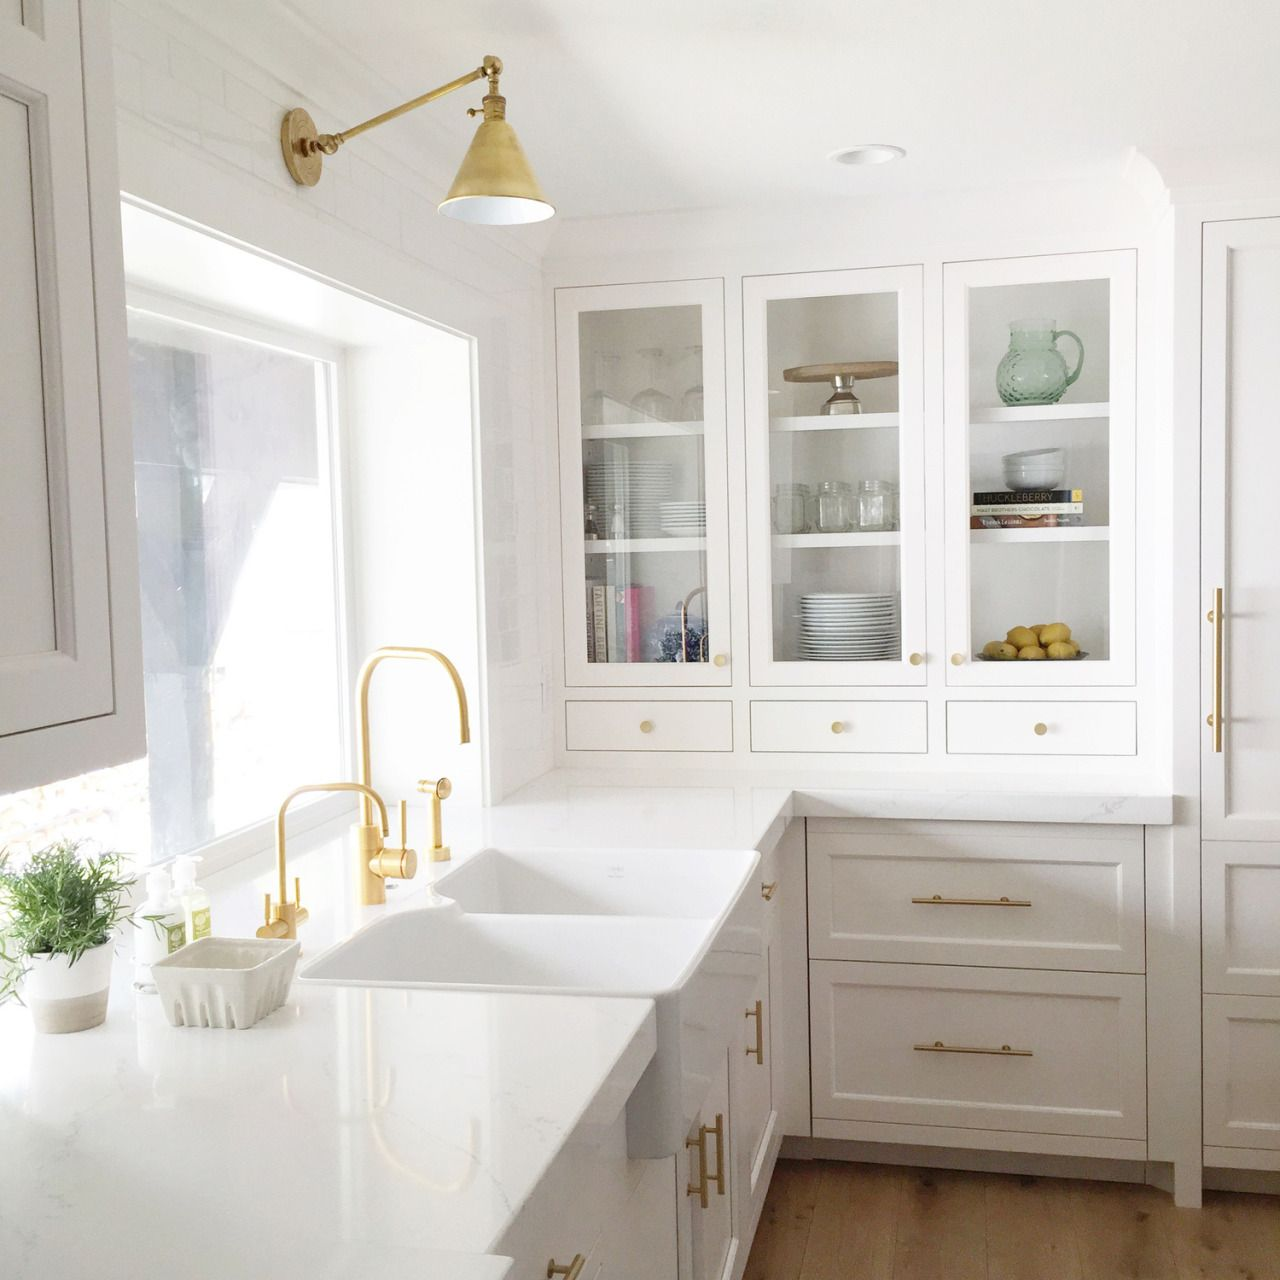 Love This Beautiful White Kitchen I Wont Have Gold Sink Taps As They Will Have To Be Polished Constantly Kitchen Inspirations Home Kitchens Gold Kitchen